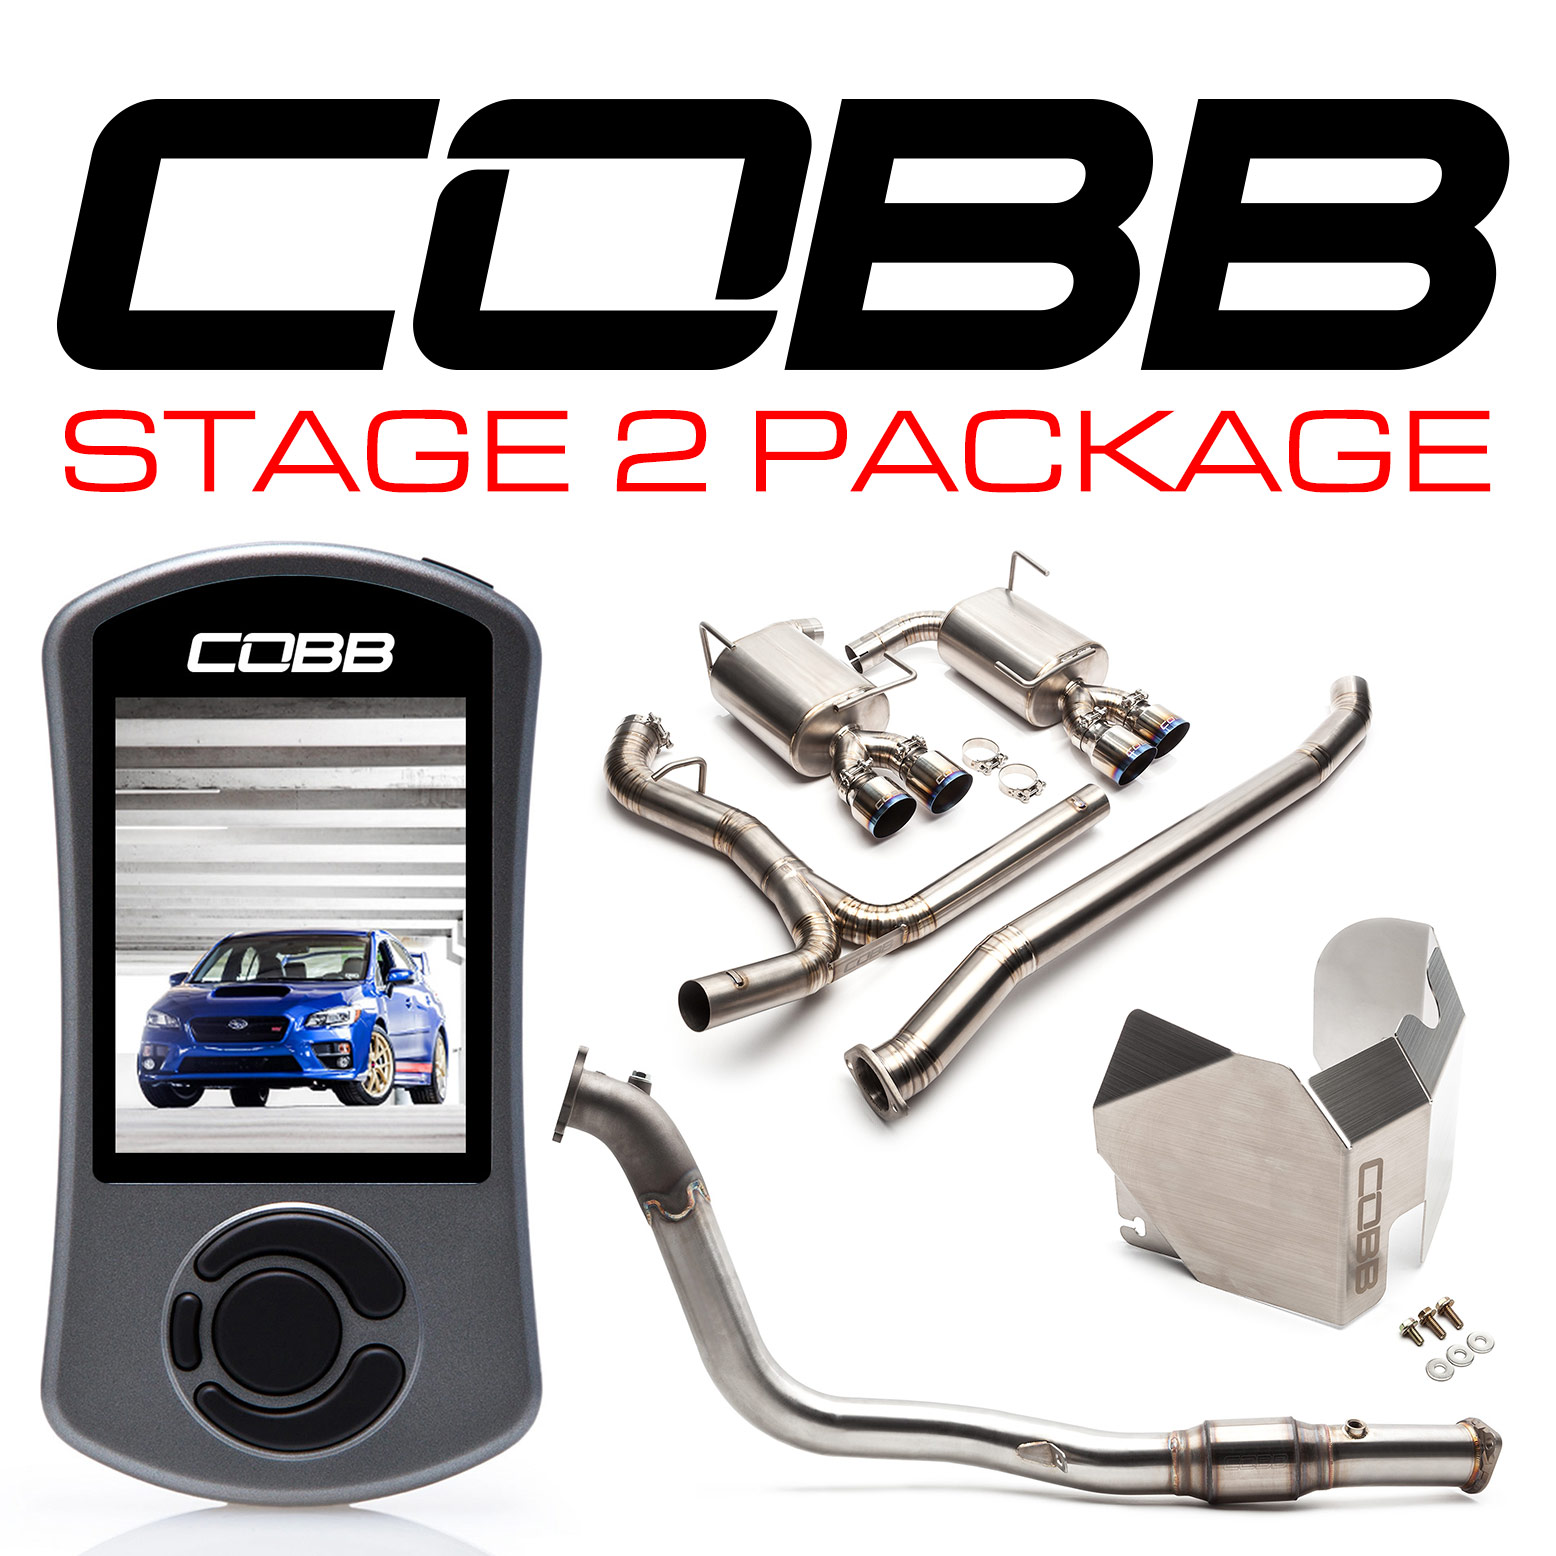 Subaru Stage 2 Power Package Titanium STI Sedan 2015-2019, STI Type RA 2018